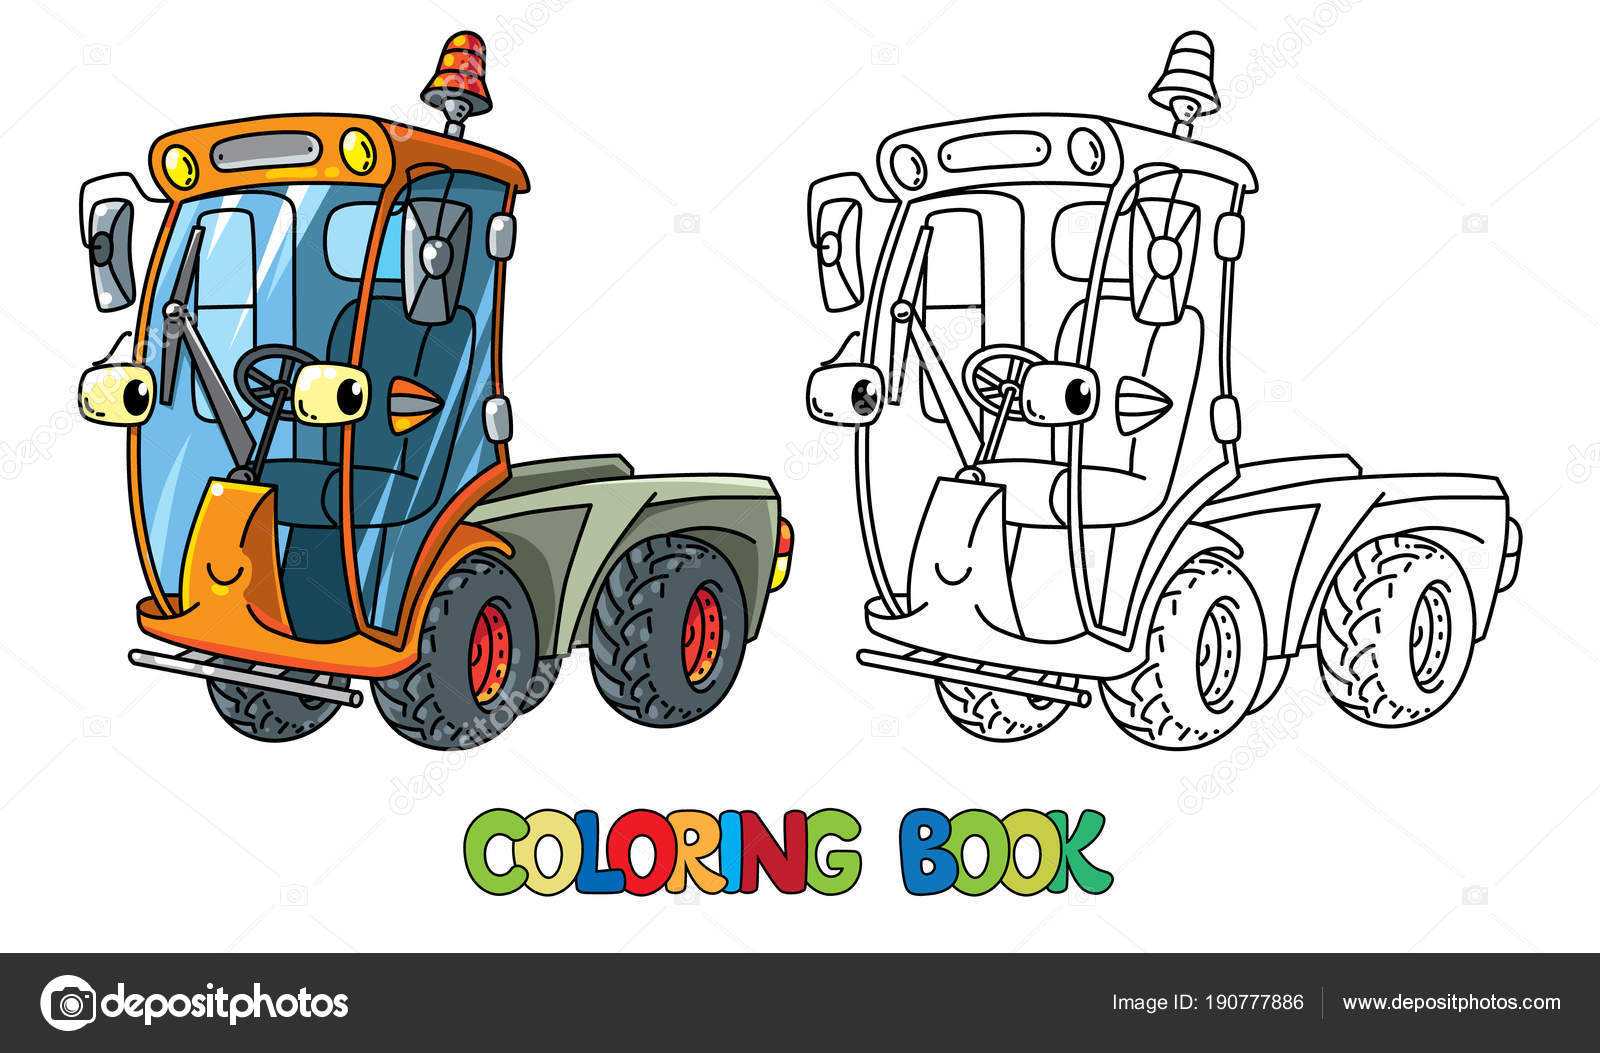 Funny Small Sweeper Car With Eyes Coloring Book Stock Vector